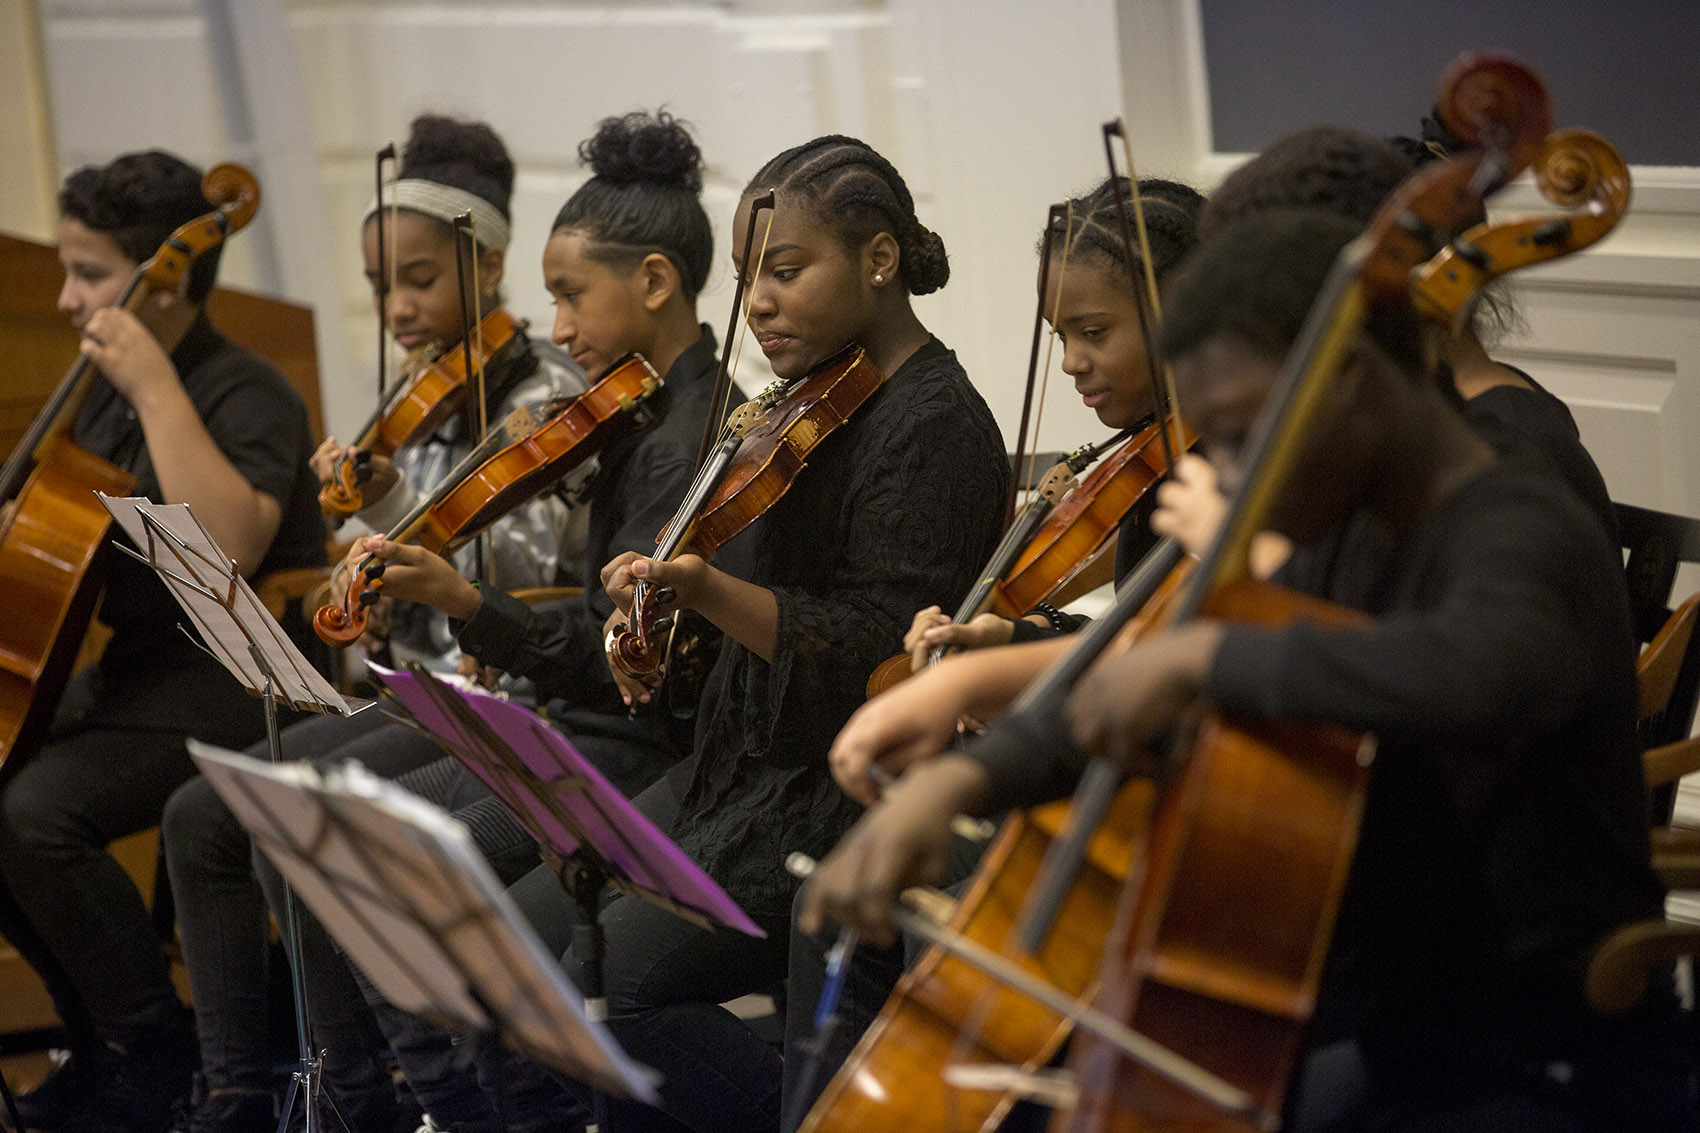 Students from the Conservatory Lab Charter School in Boston perform during a recent conference at the Harvard Graduate School of Education. (Jesse Costa/WBUR)